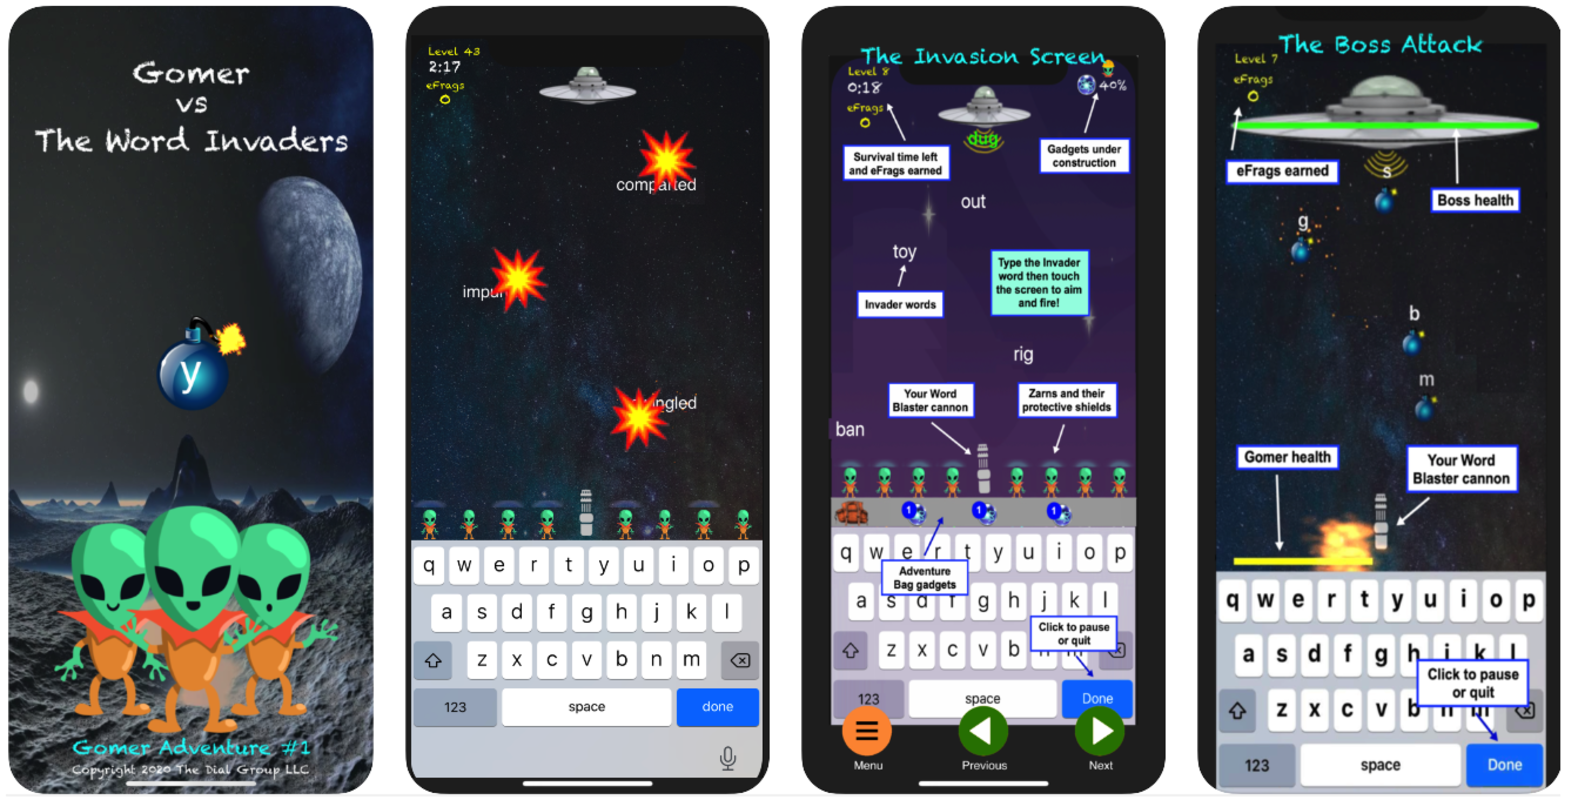 Play Gomer v The Word Invaders